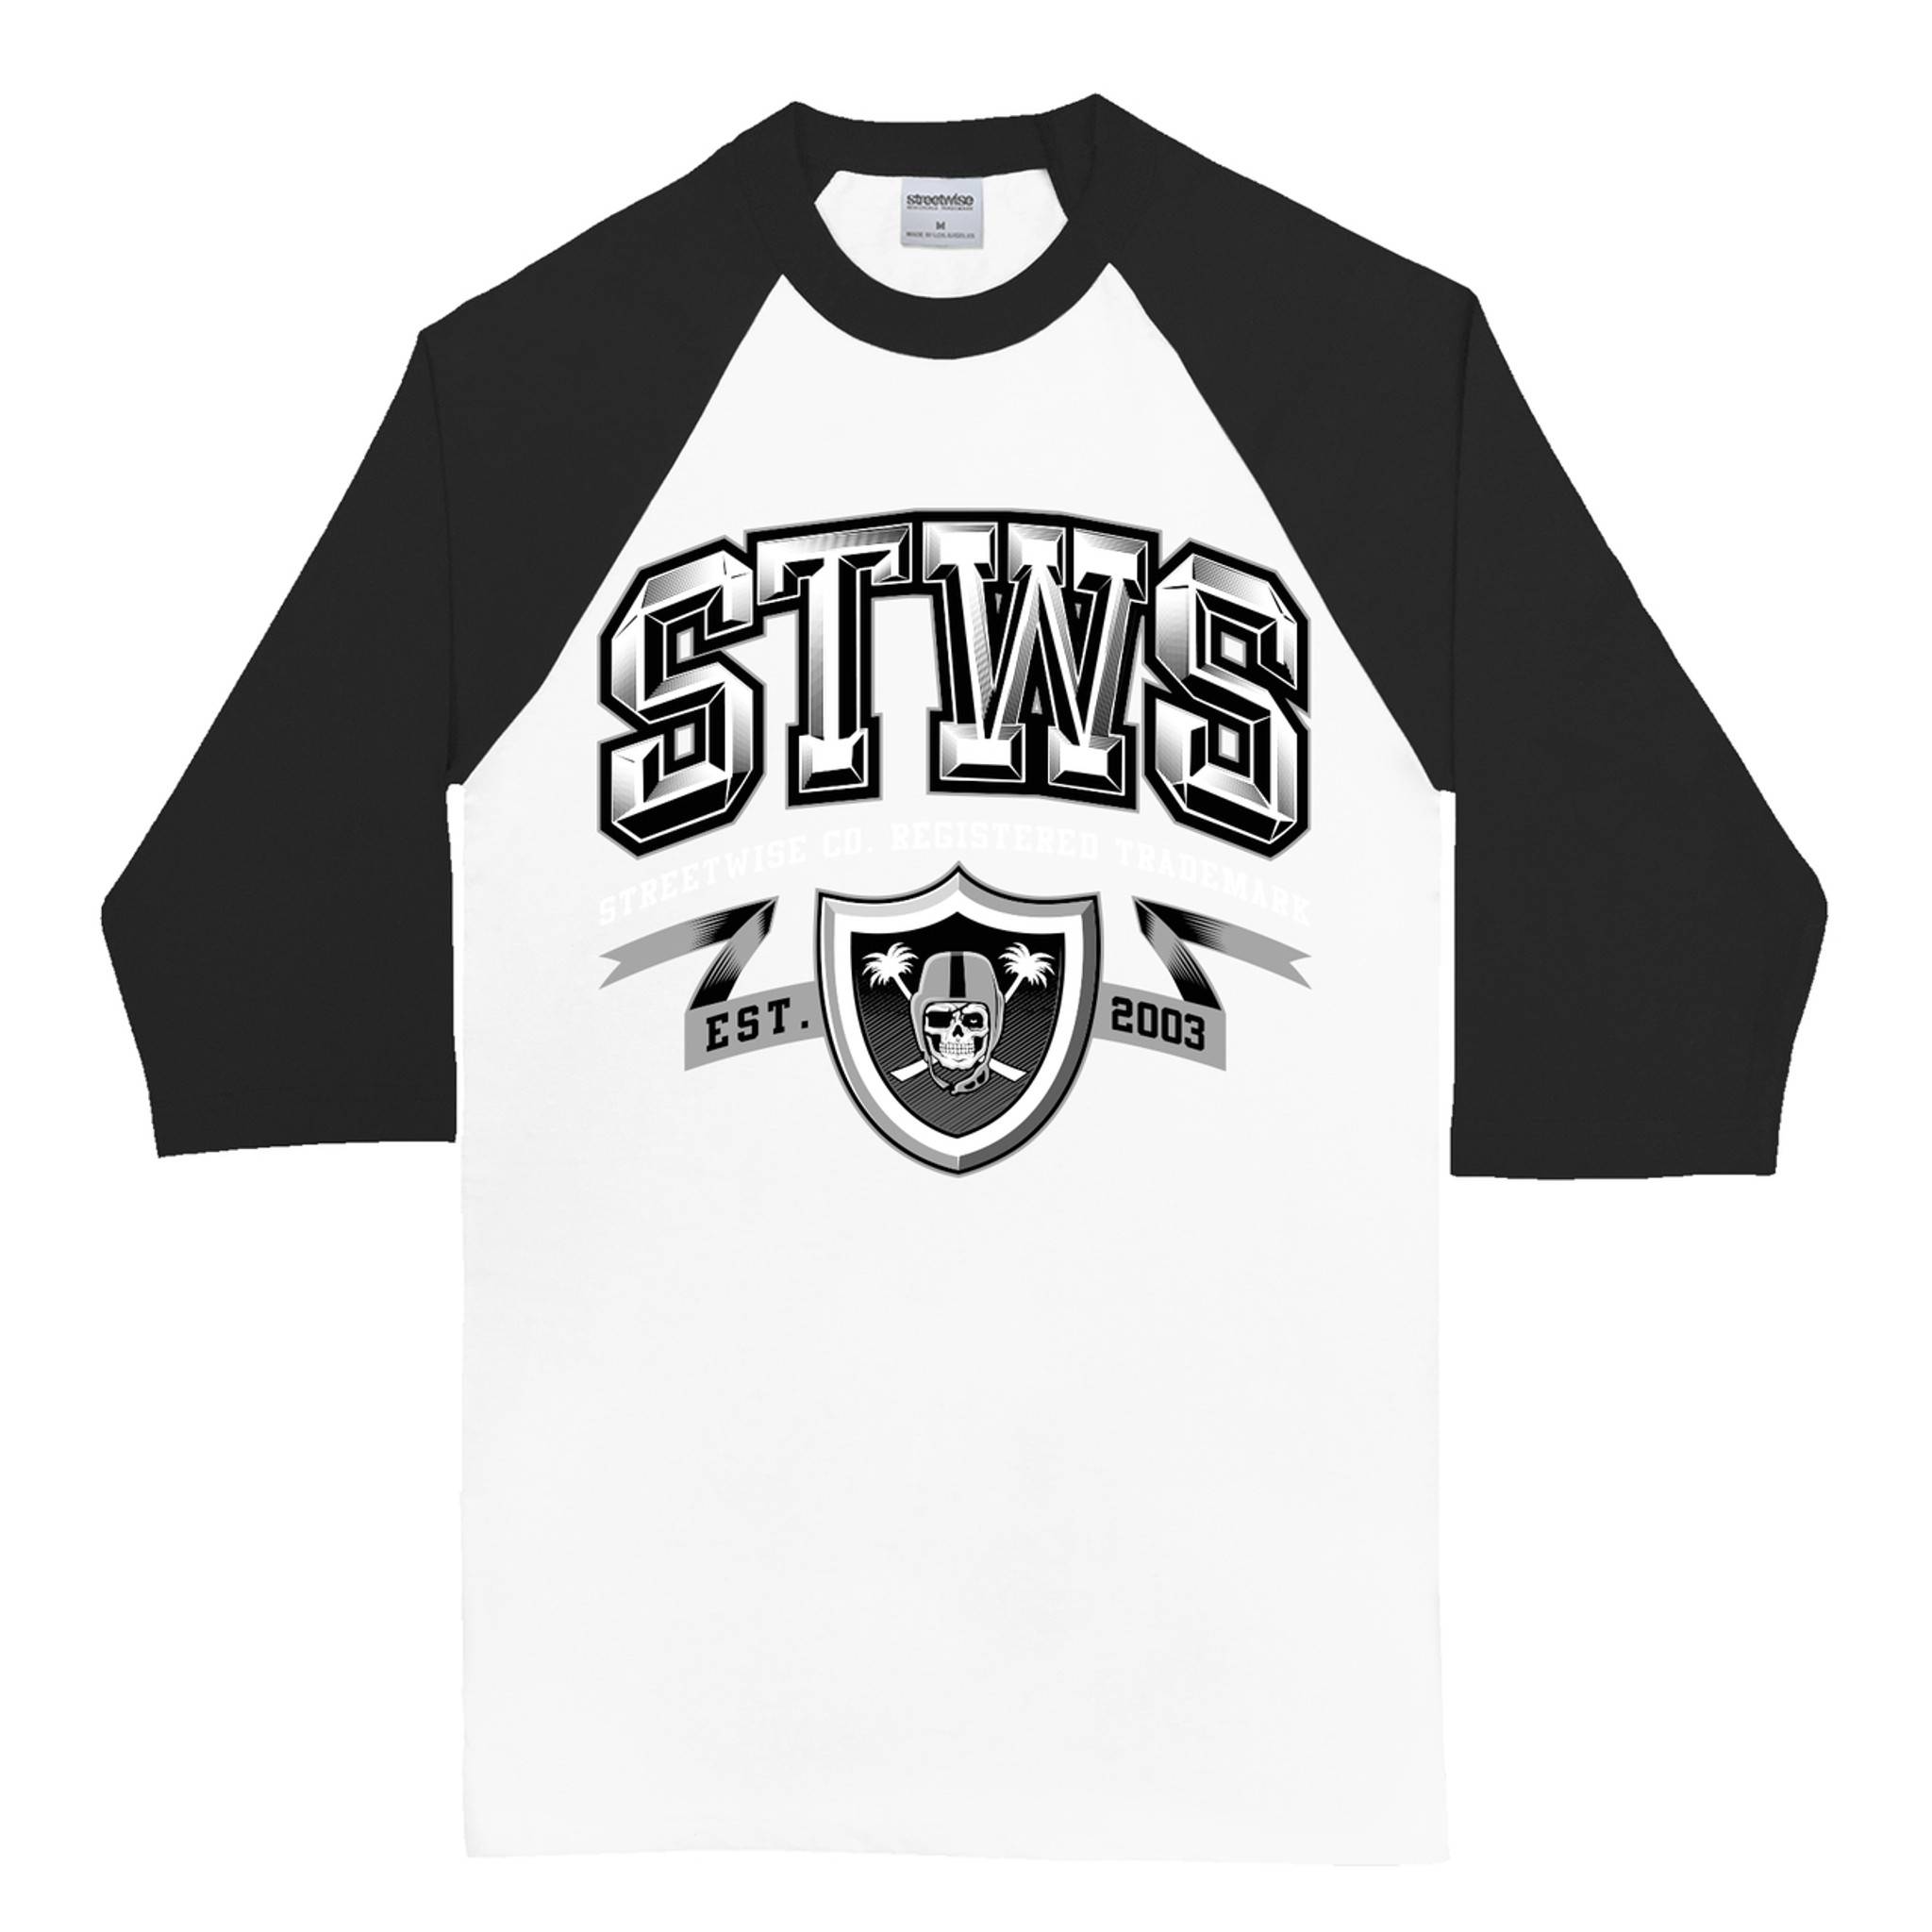 Streetwise Presidents T-Shirt